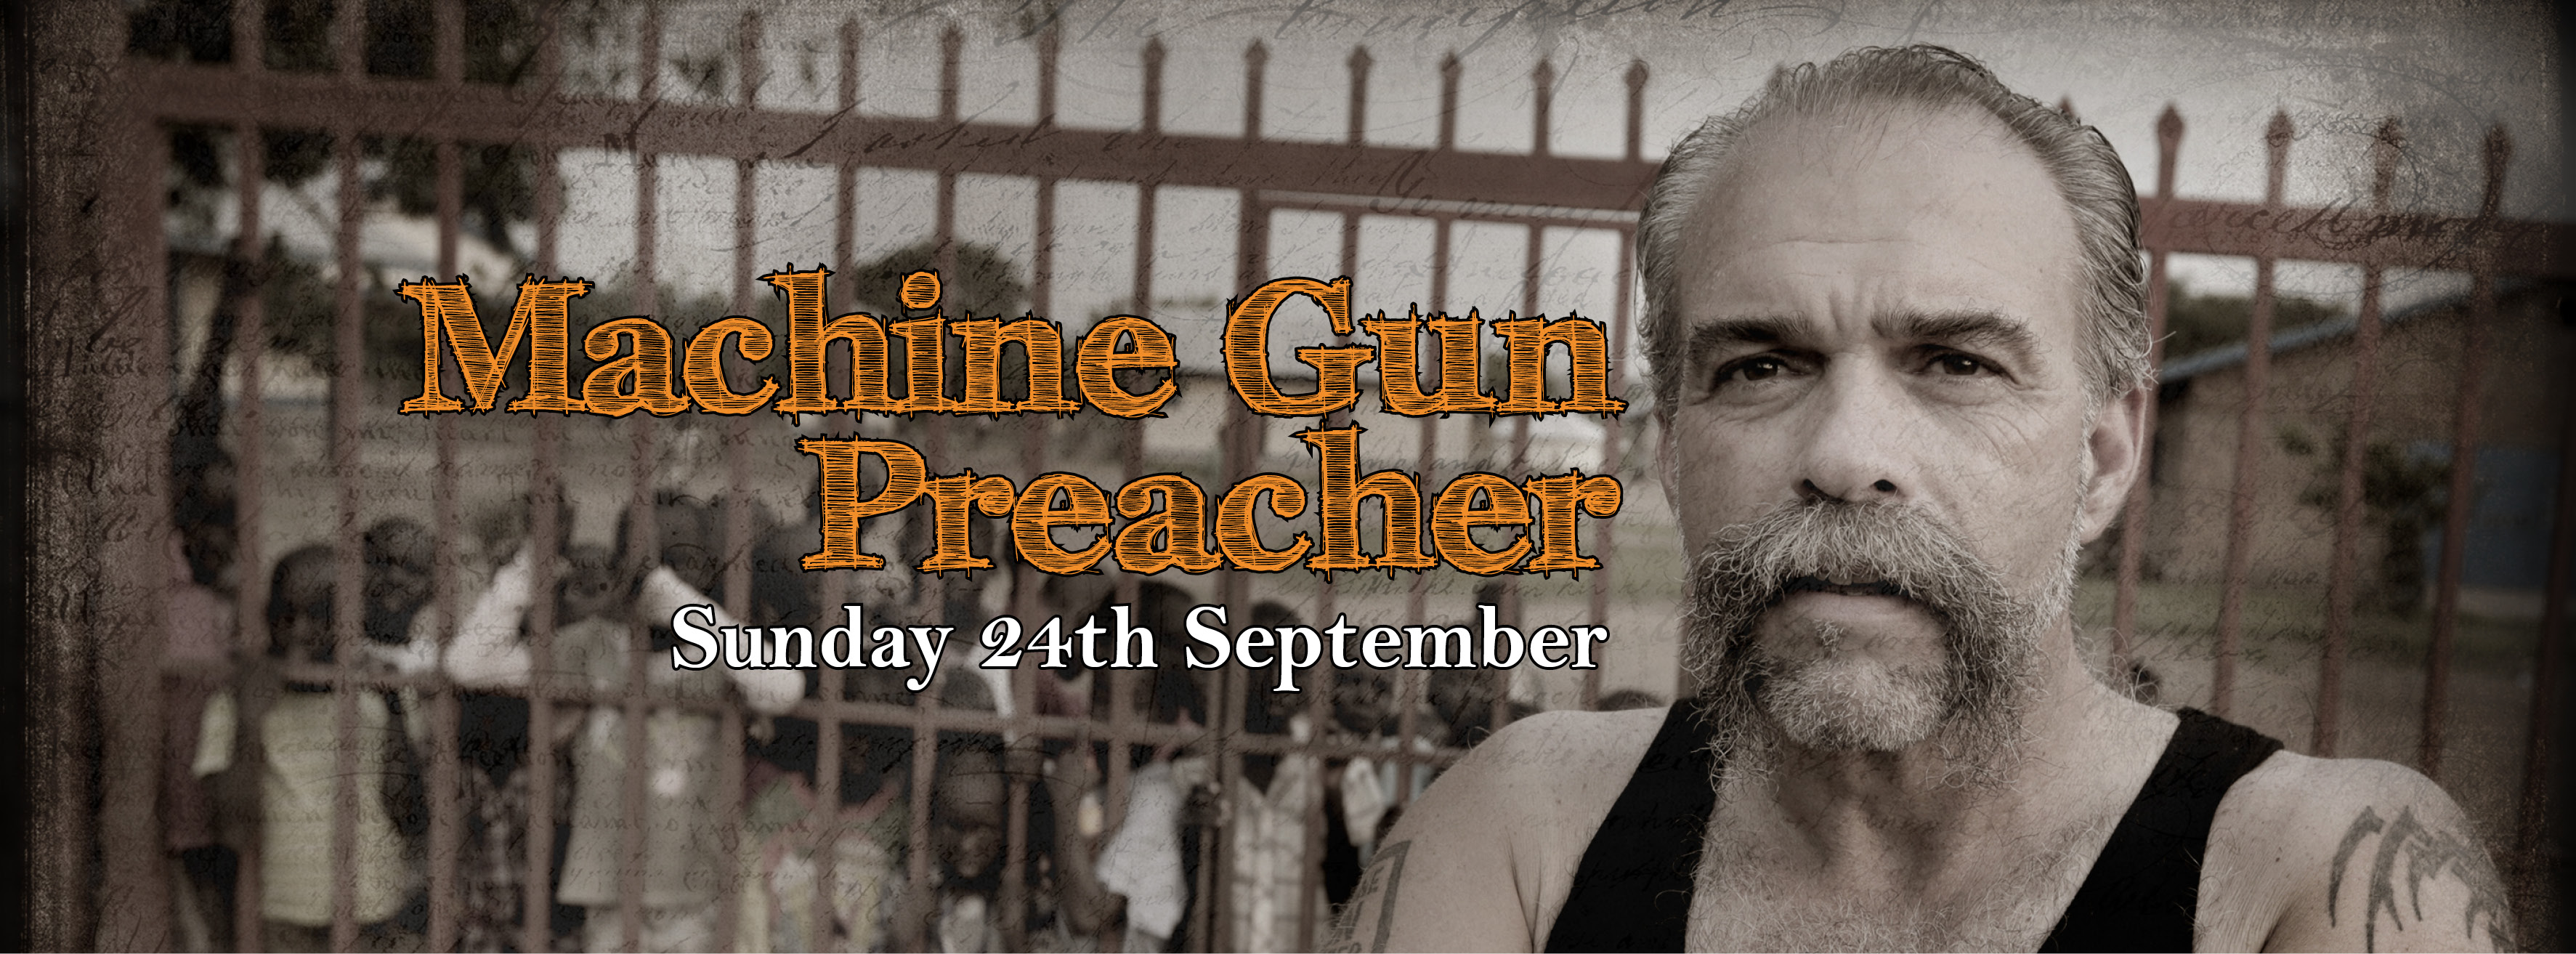 Facebook Event - Machine Gun Preacher for website